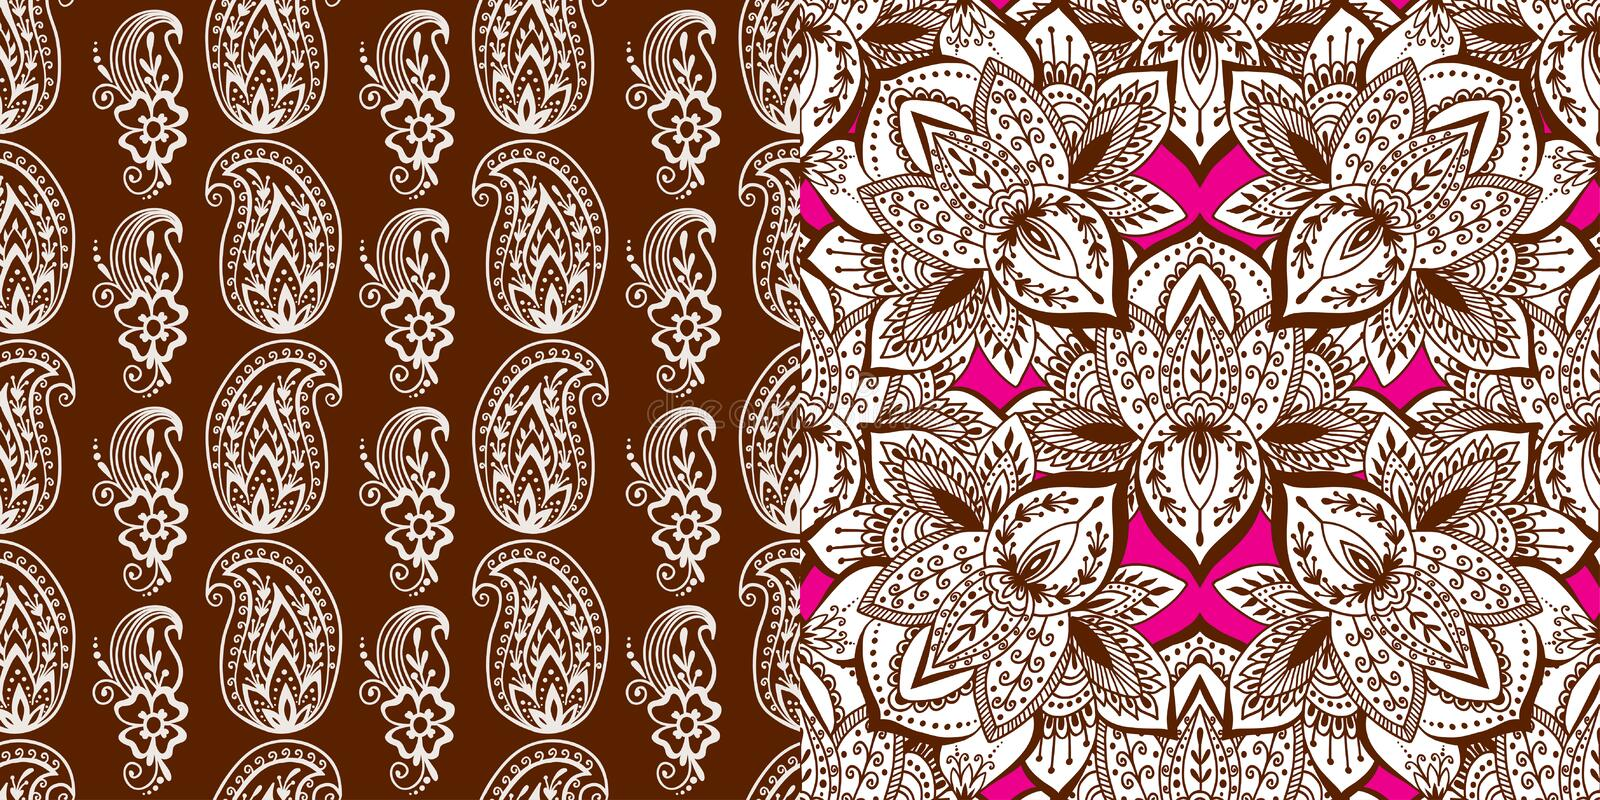 Henna tattoo mehndi flower doodle ornamental decorative indian design seamless pattern paisley arabesque embellishment. Henna tattoo mehndi flower template royalty free illustration